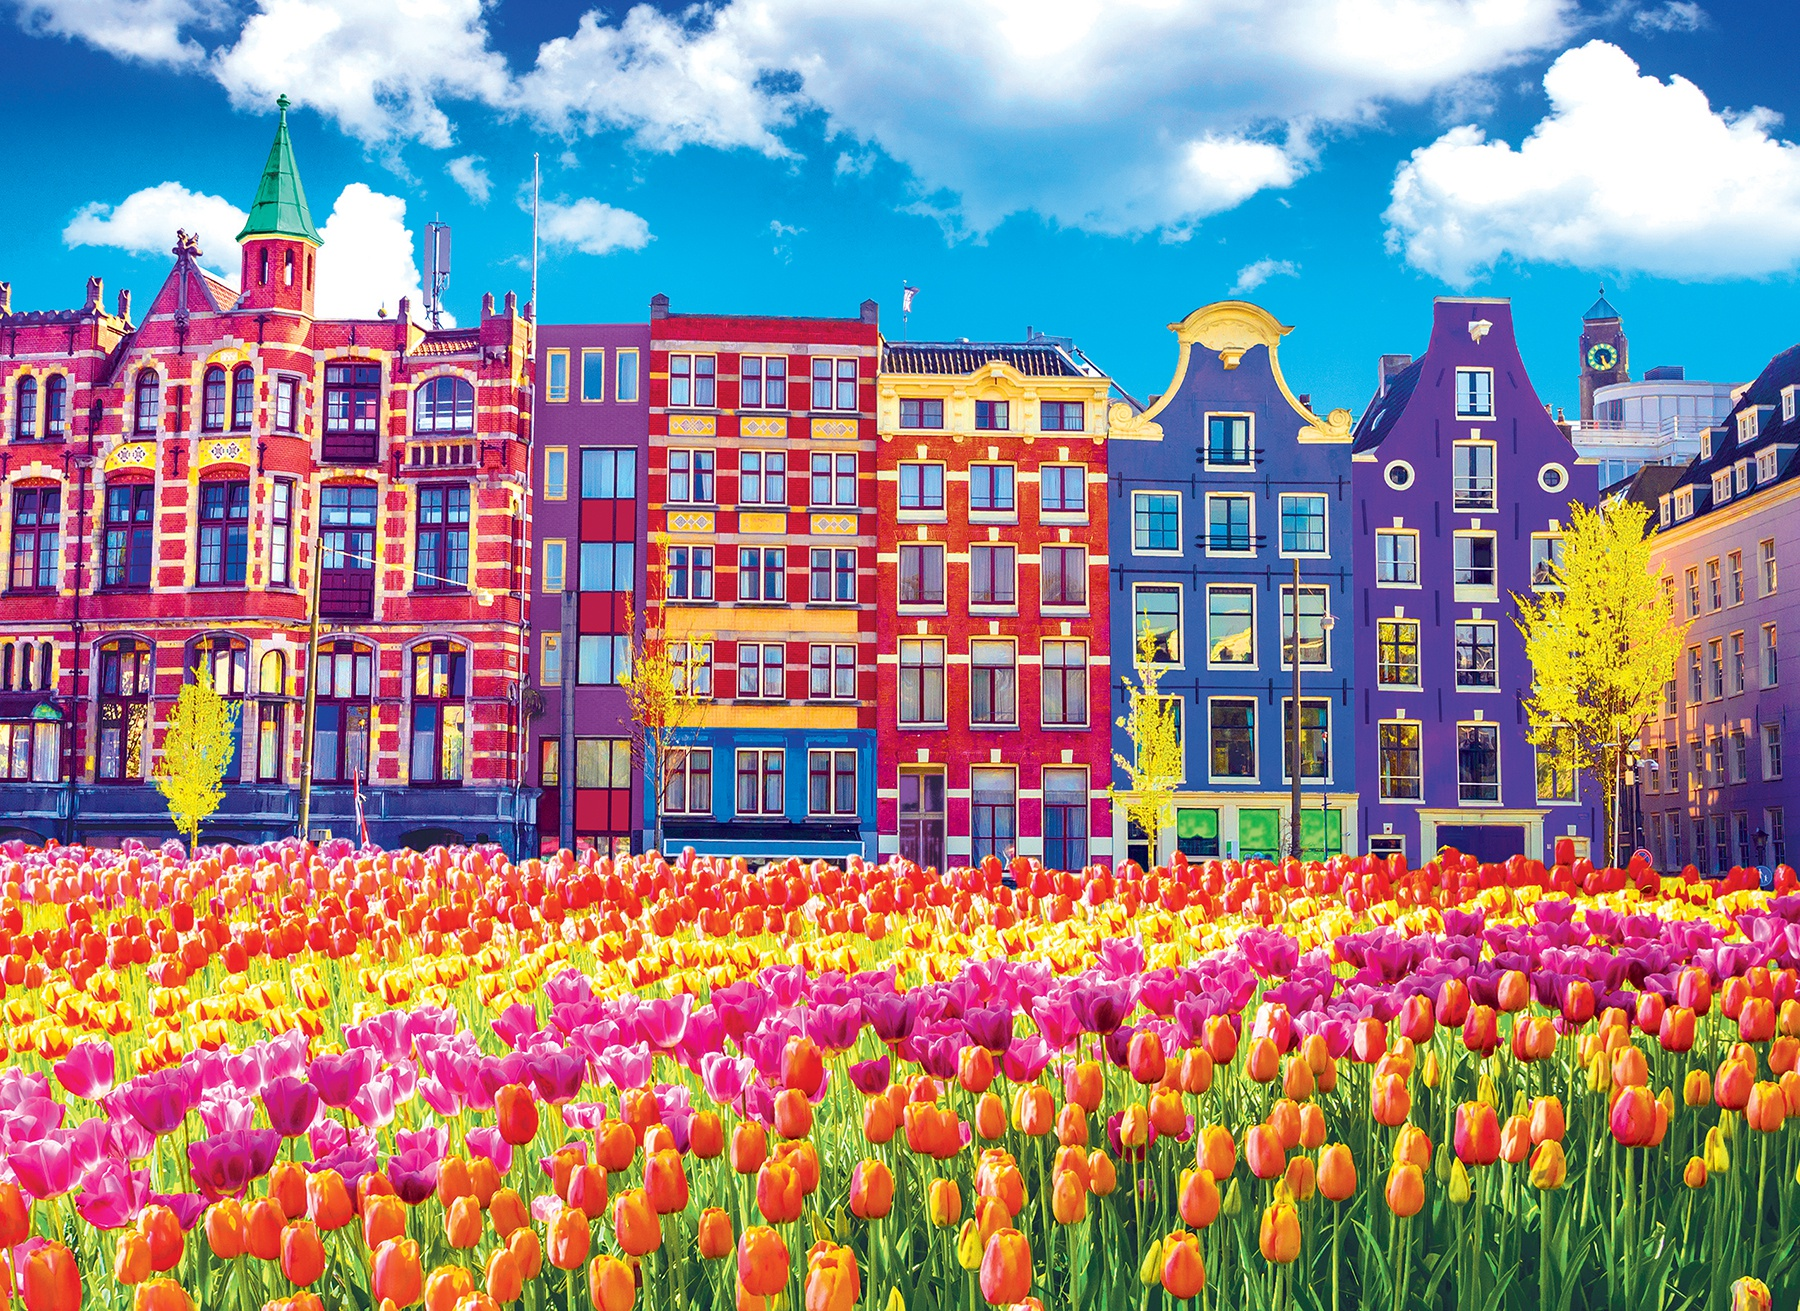 Premium Jigsaw Puzzle 1000 Pieces 20X27-Buildings And Tulips Amsterdam